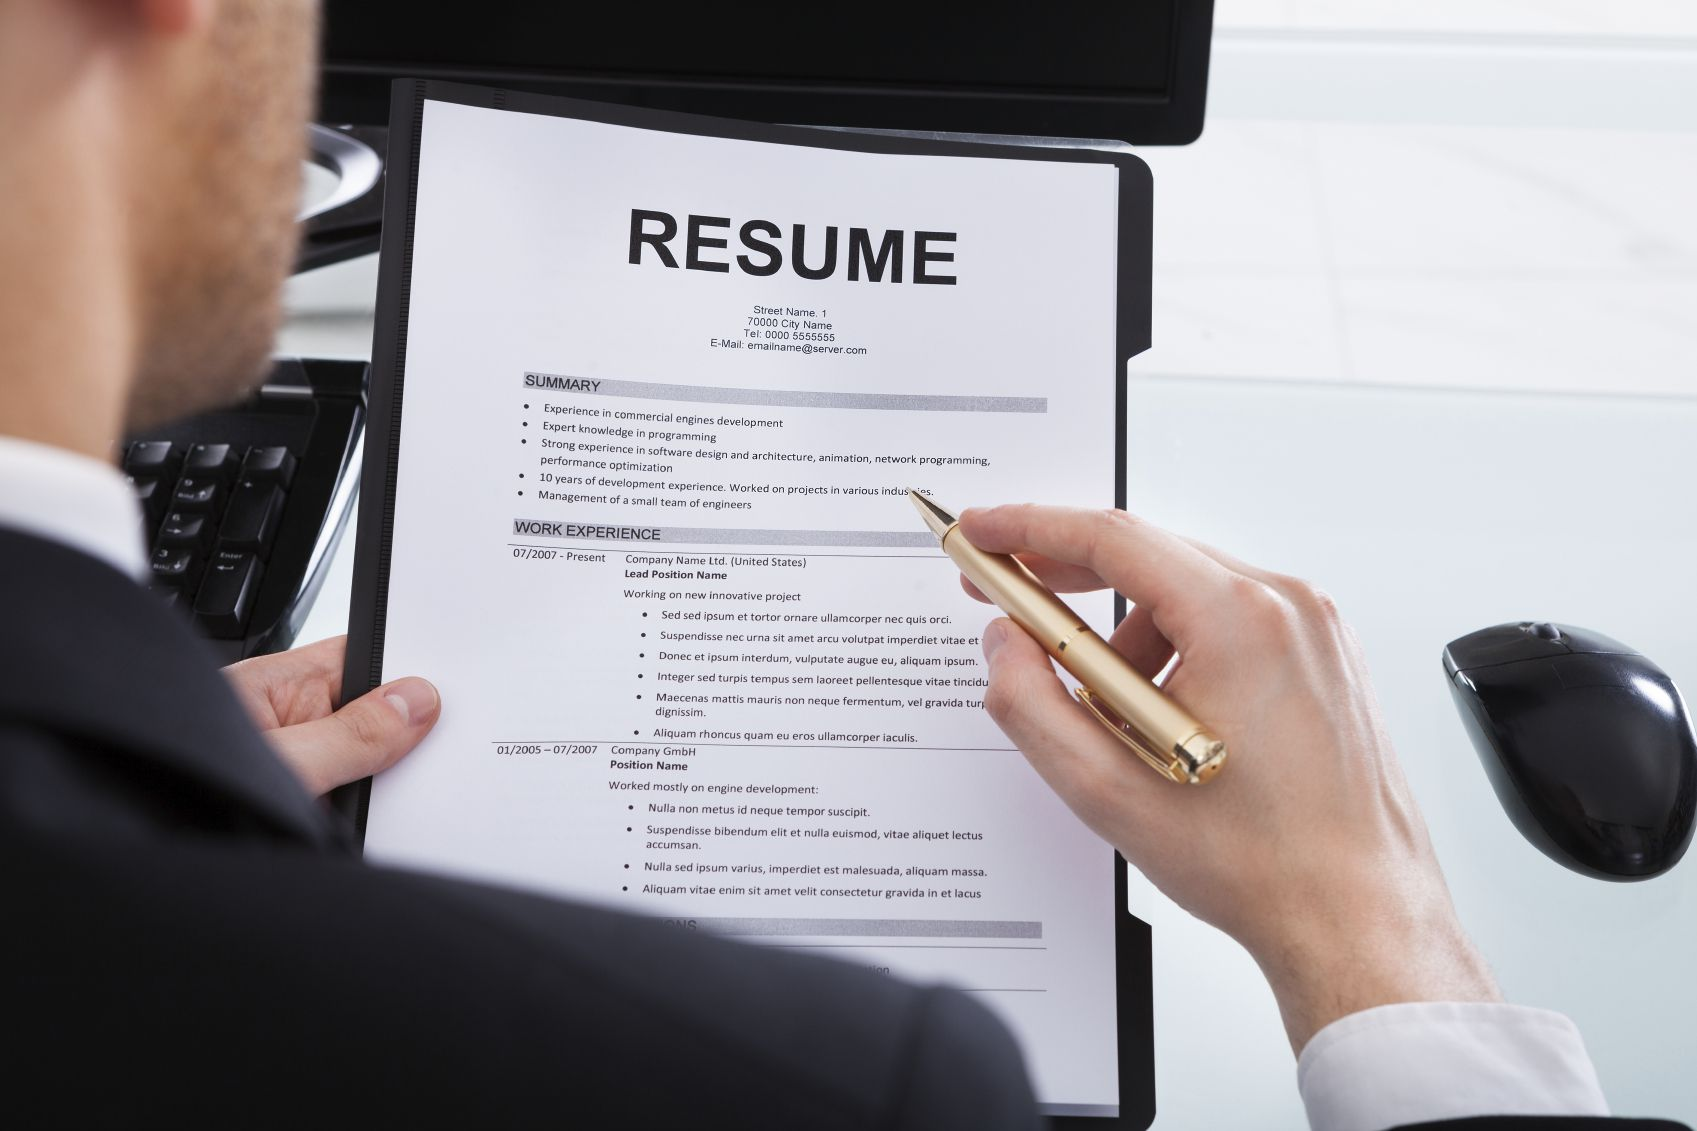 how to include bullet points in a resume